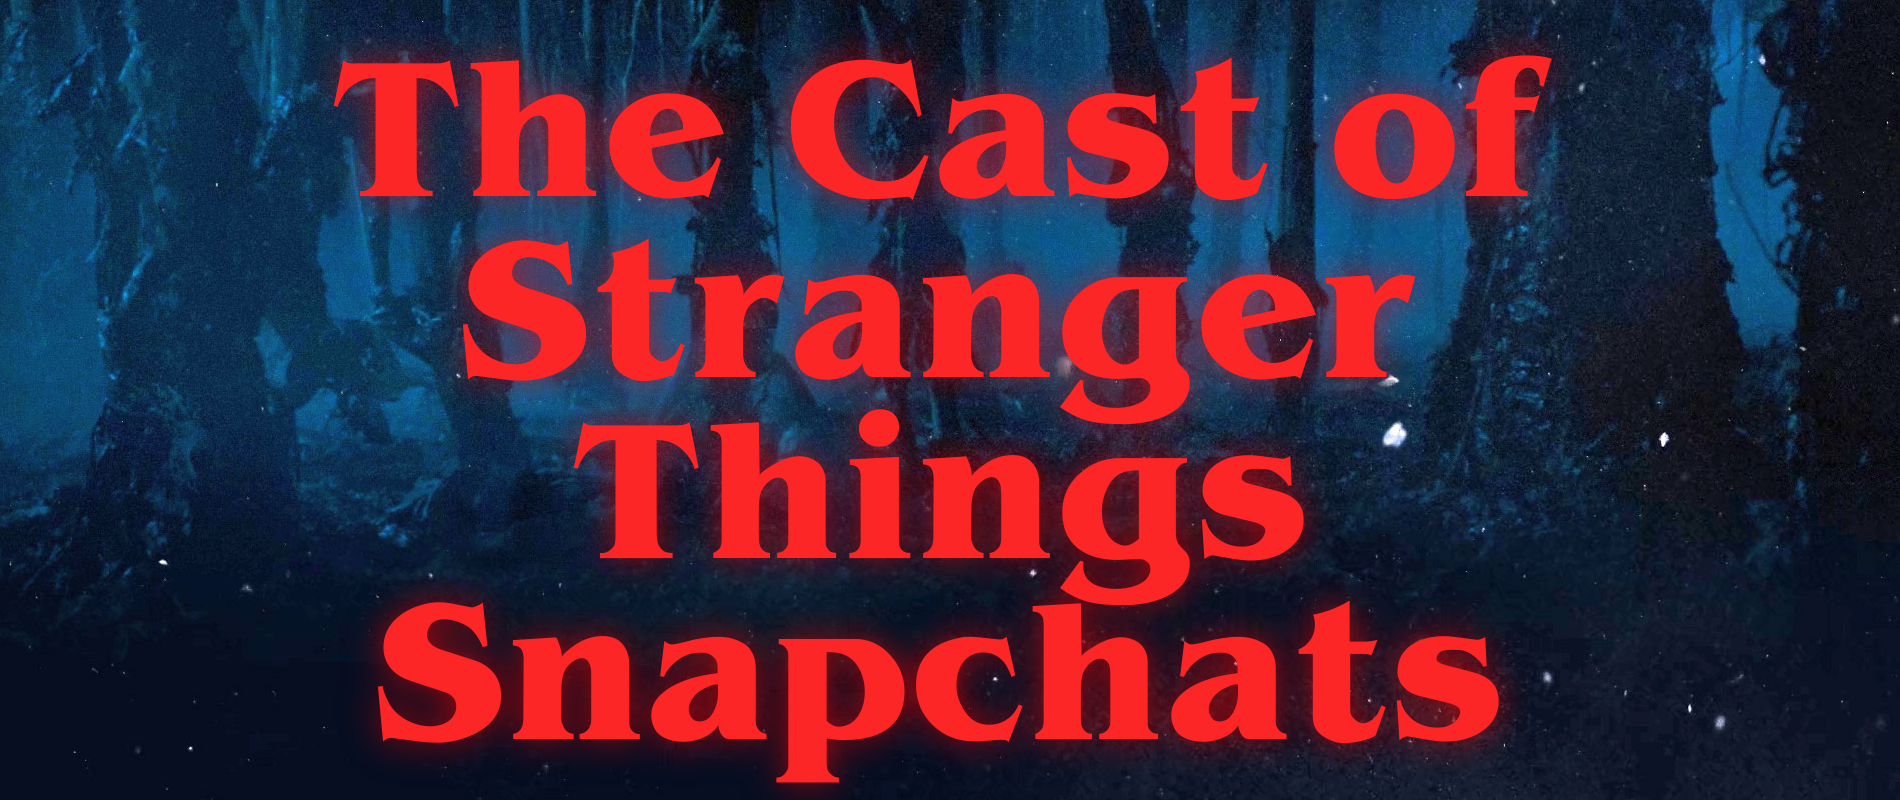 The Cast of Stranger Things Snapchats